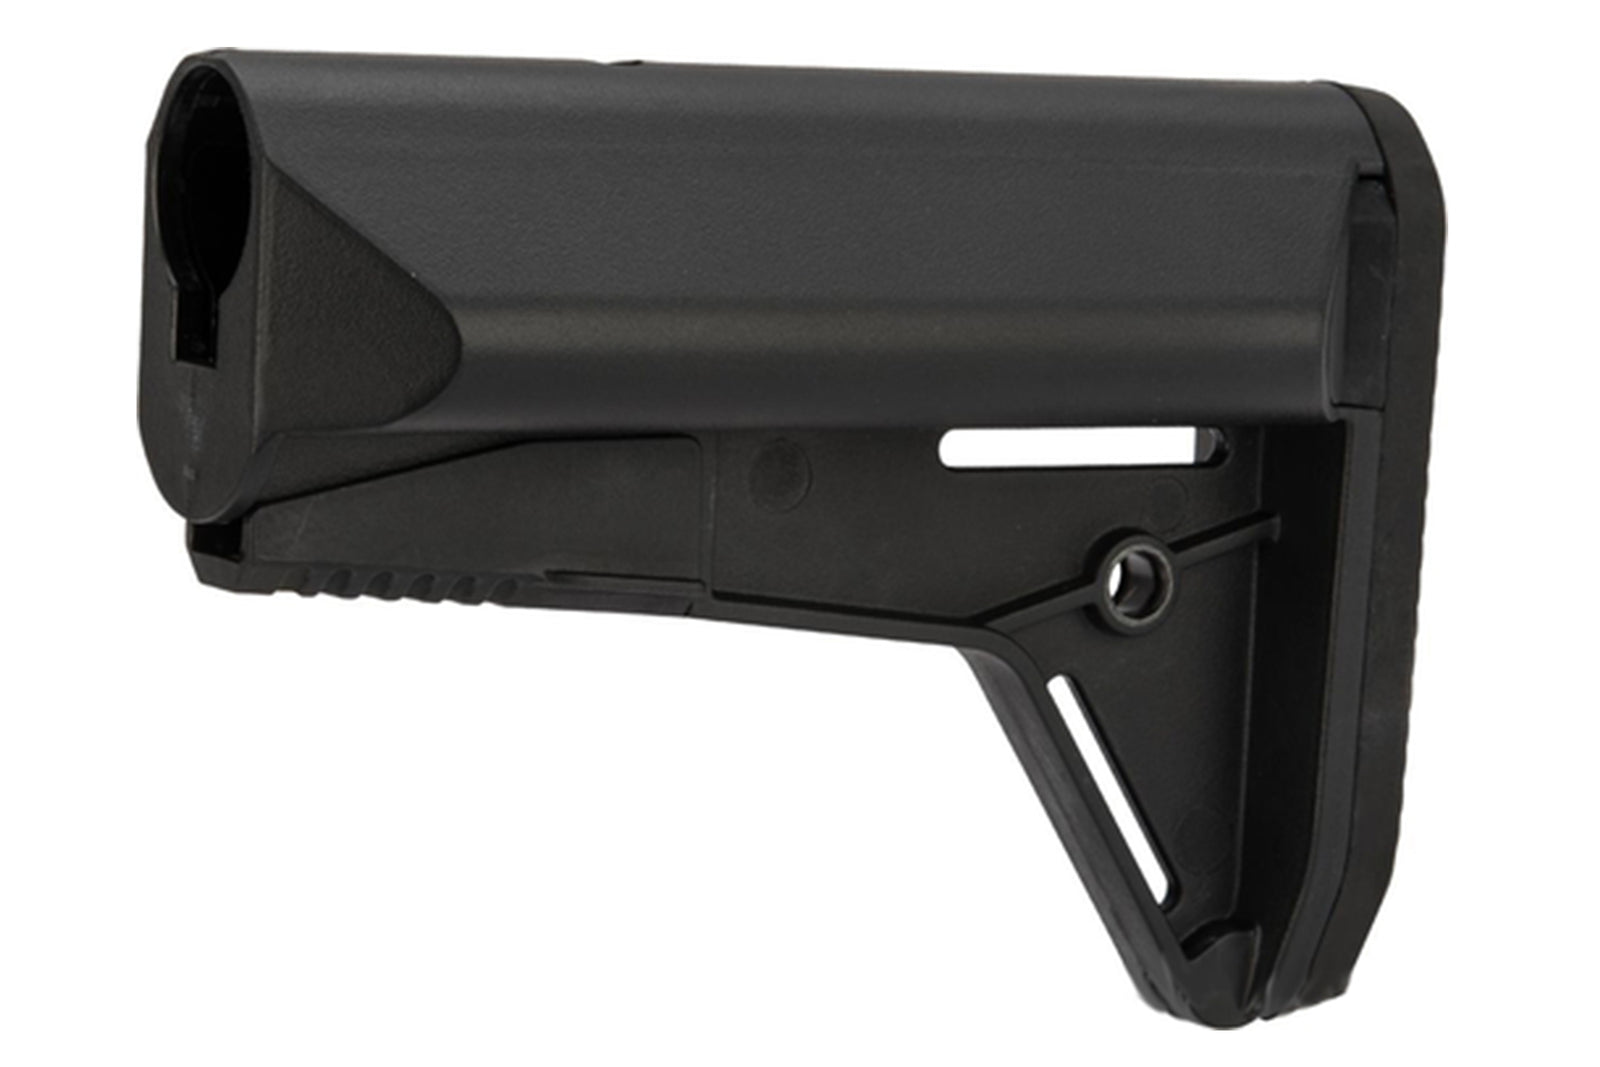 CYMA Retractable Battery Storage Stock for M4 / M16 Series Rifles